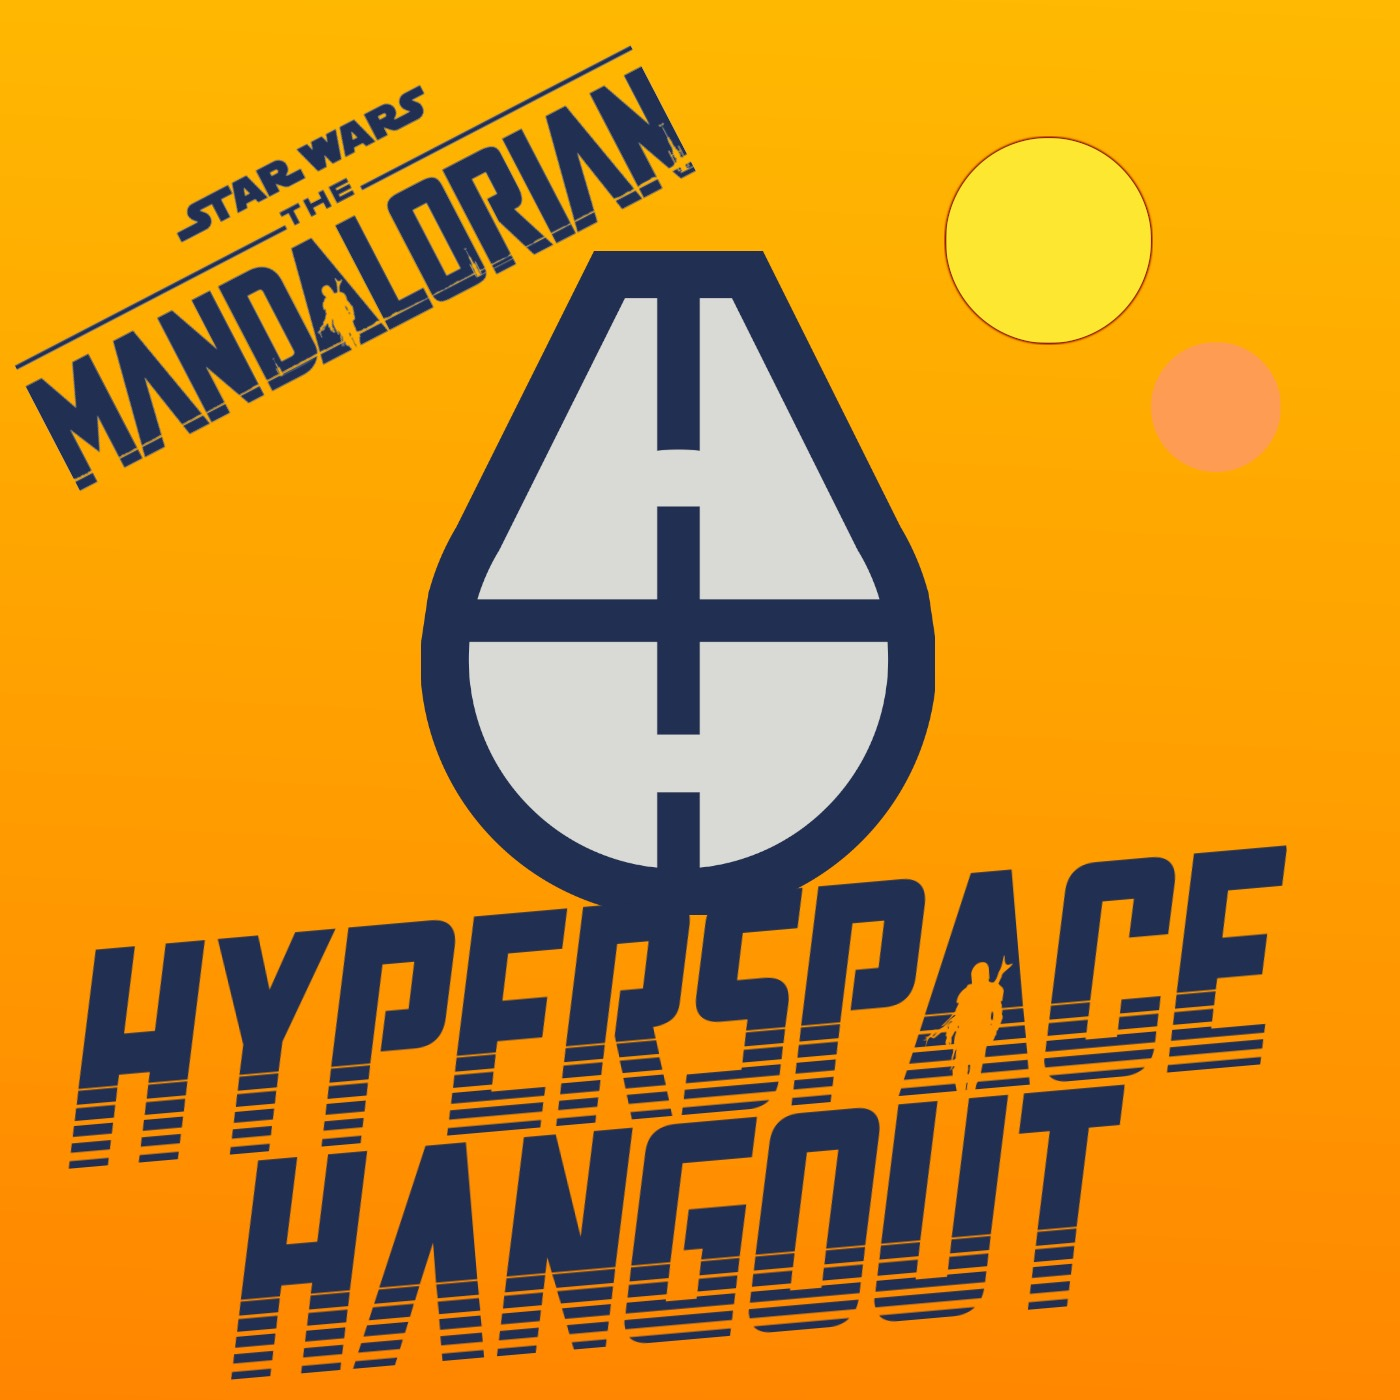 Ep. 77 - The Mandalorian Season 2 Ep 4 | Reaction, Discussion, Transmissions, & Predictions